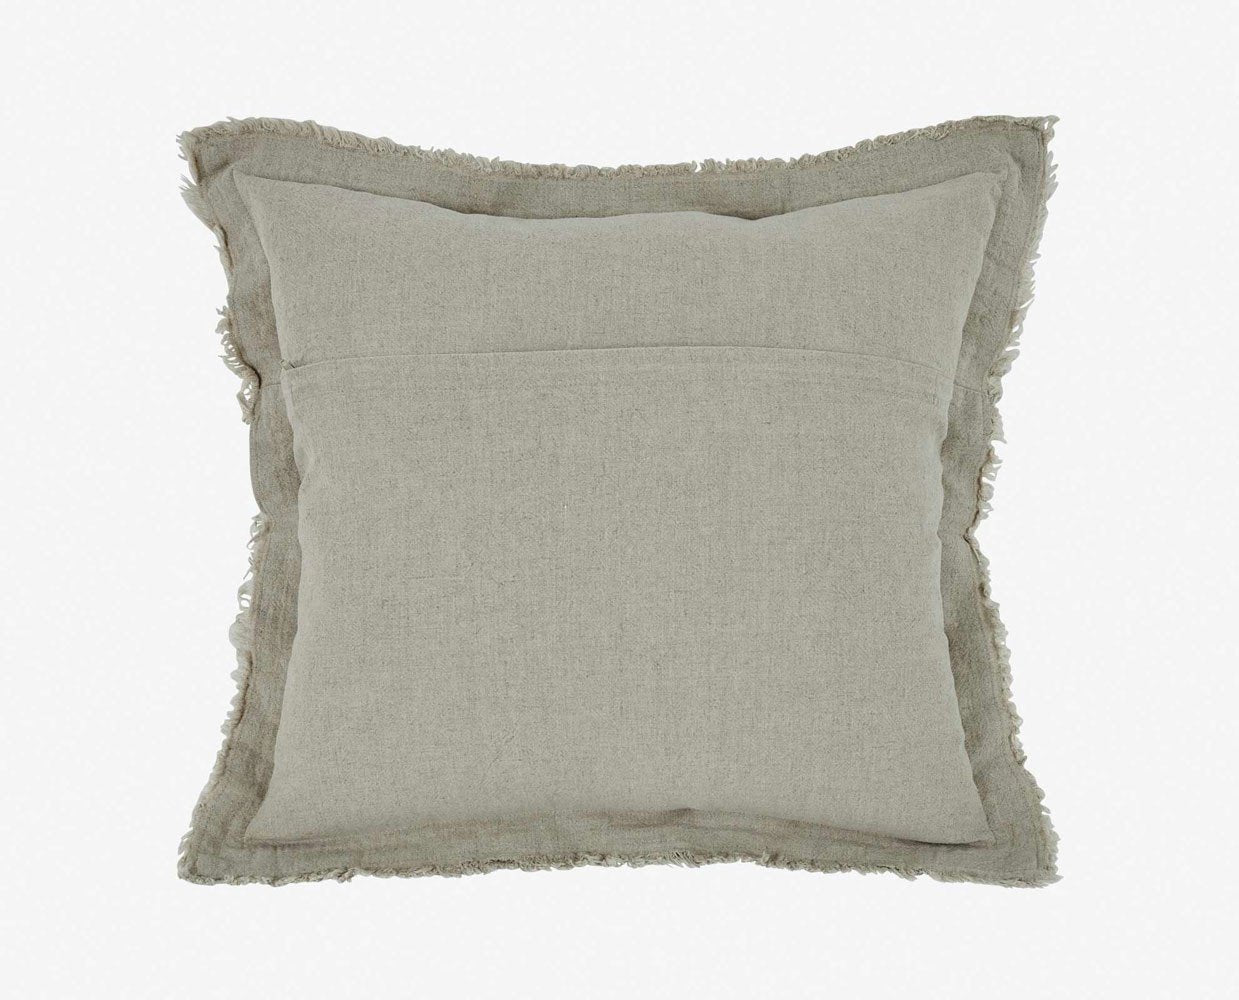 Beige modern classic textured pillow